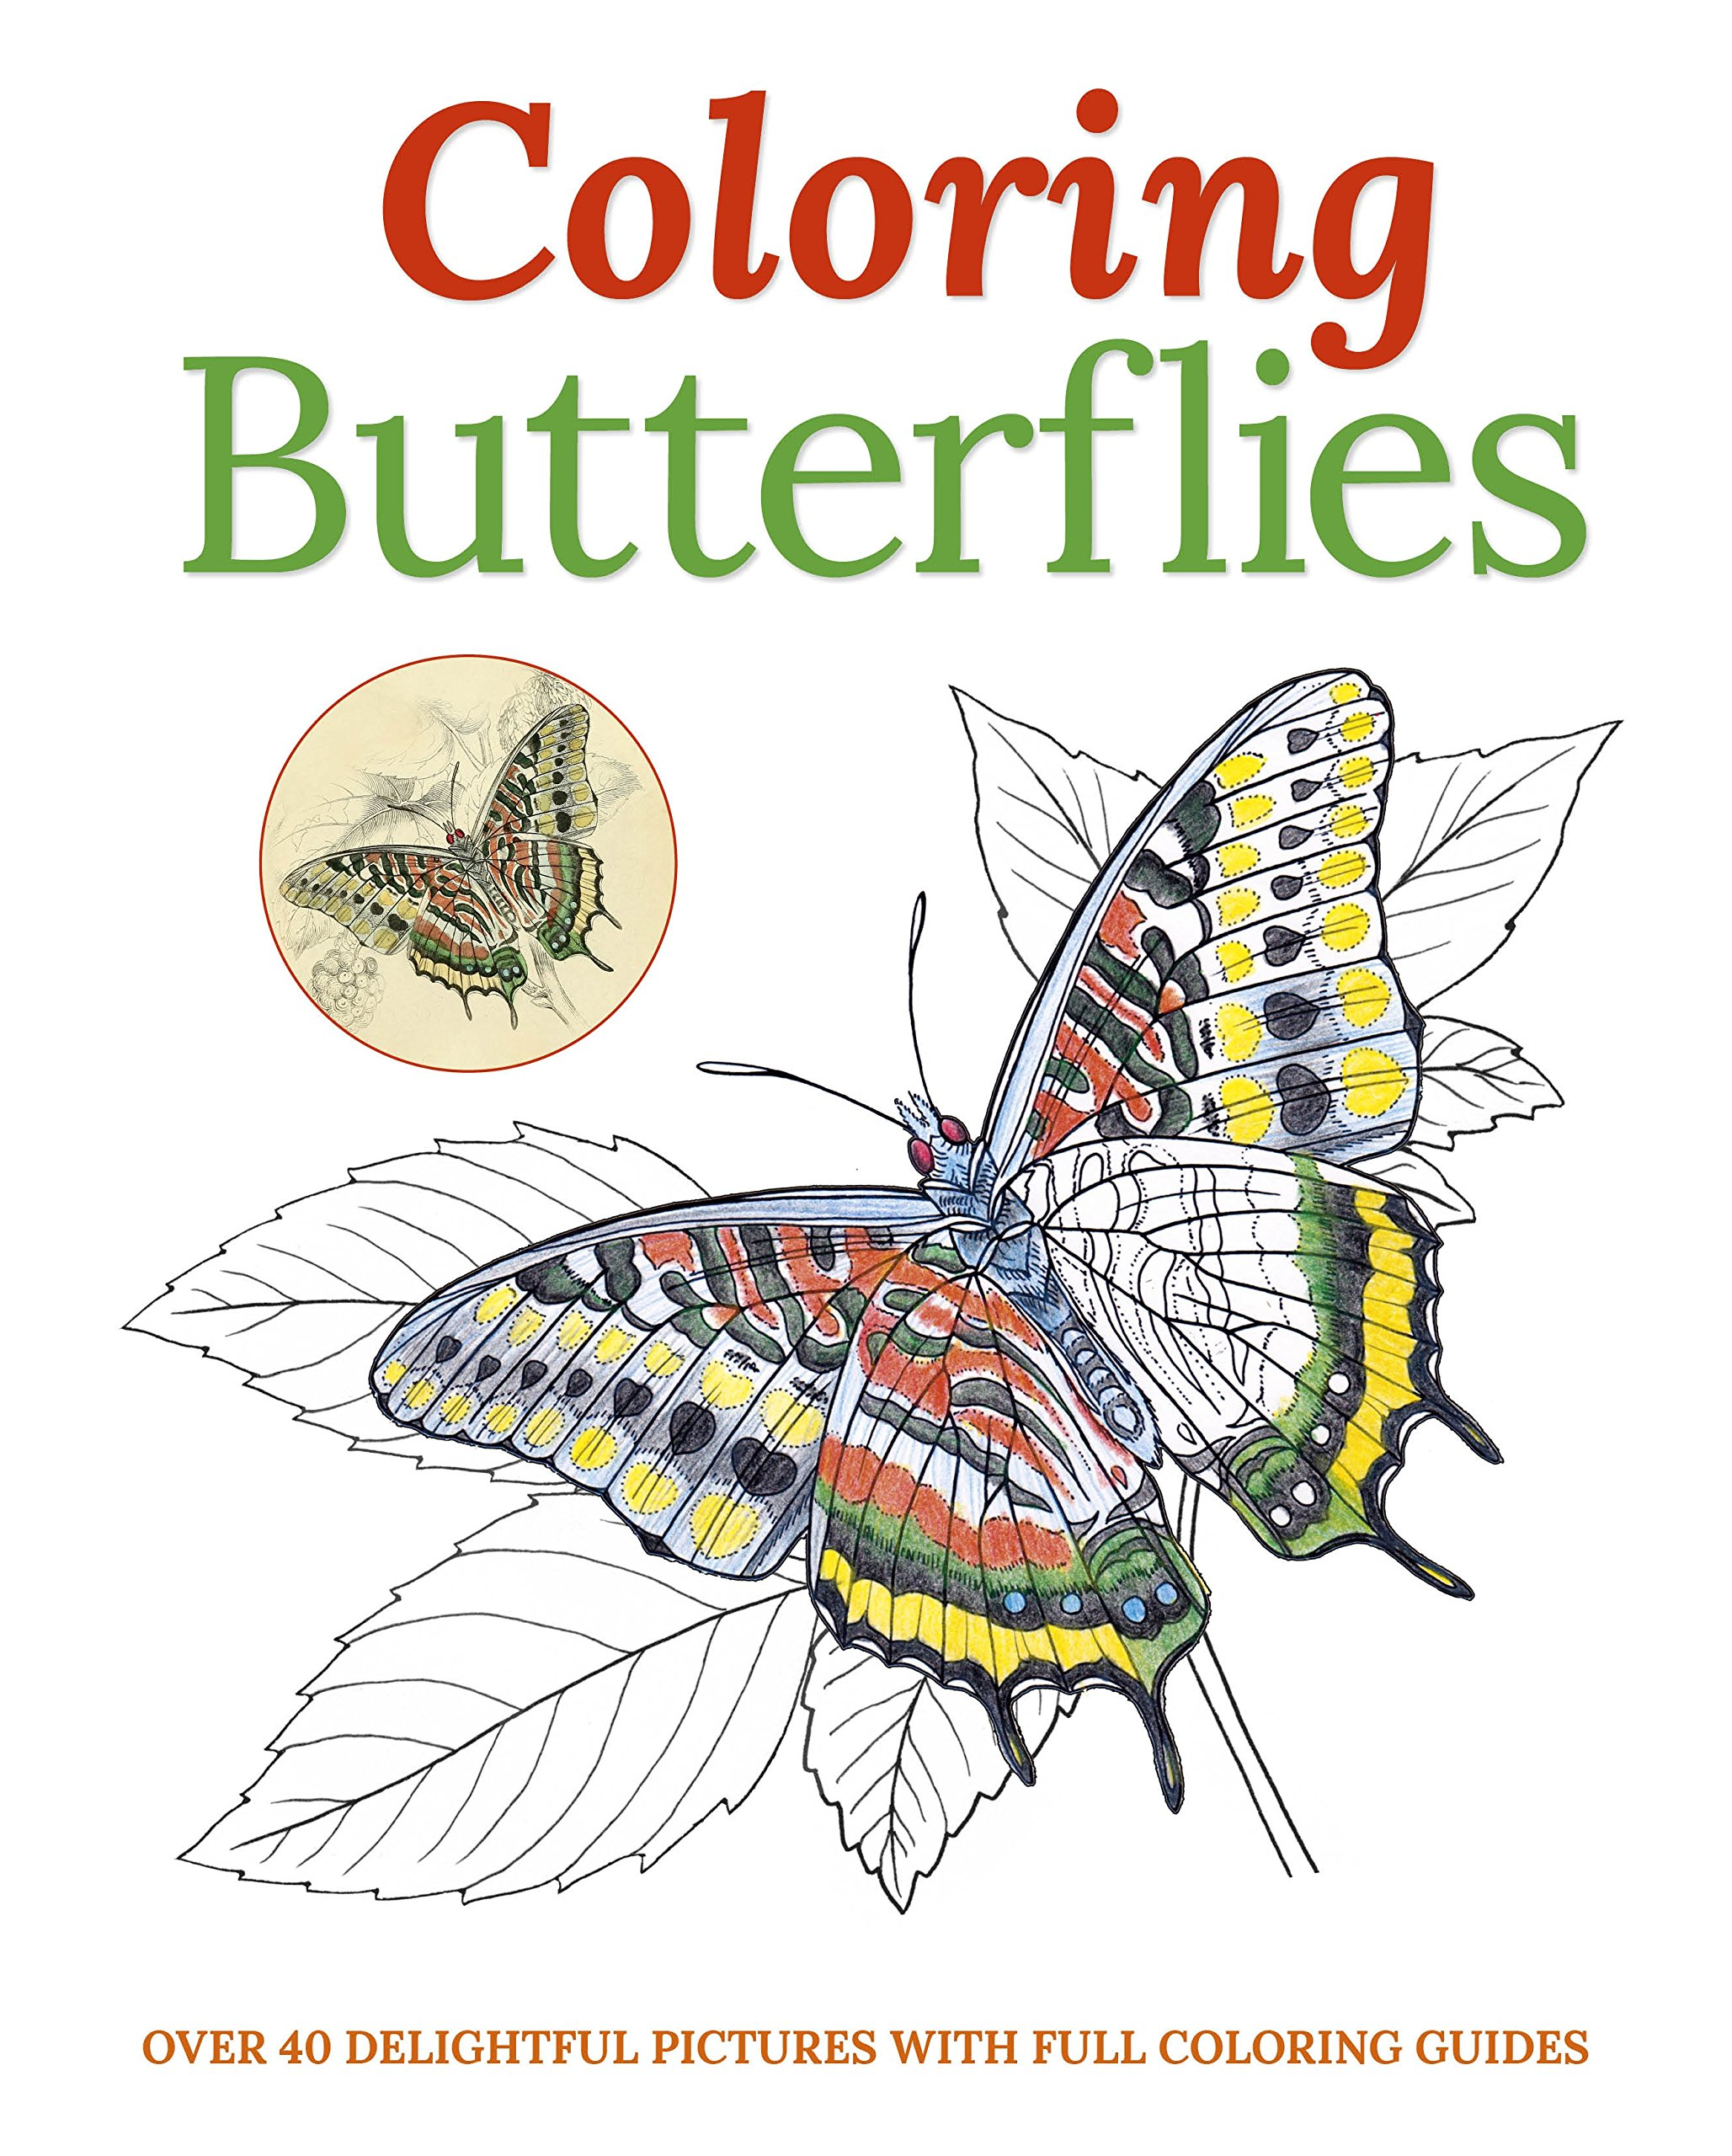 amazon com coloring butterflies 9781785990403 sir william